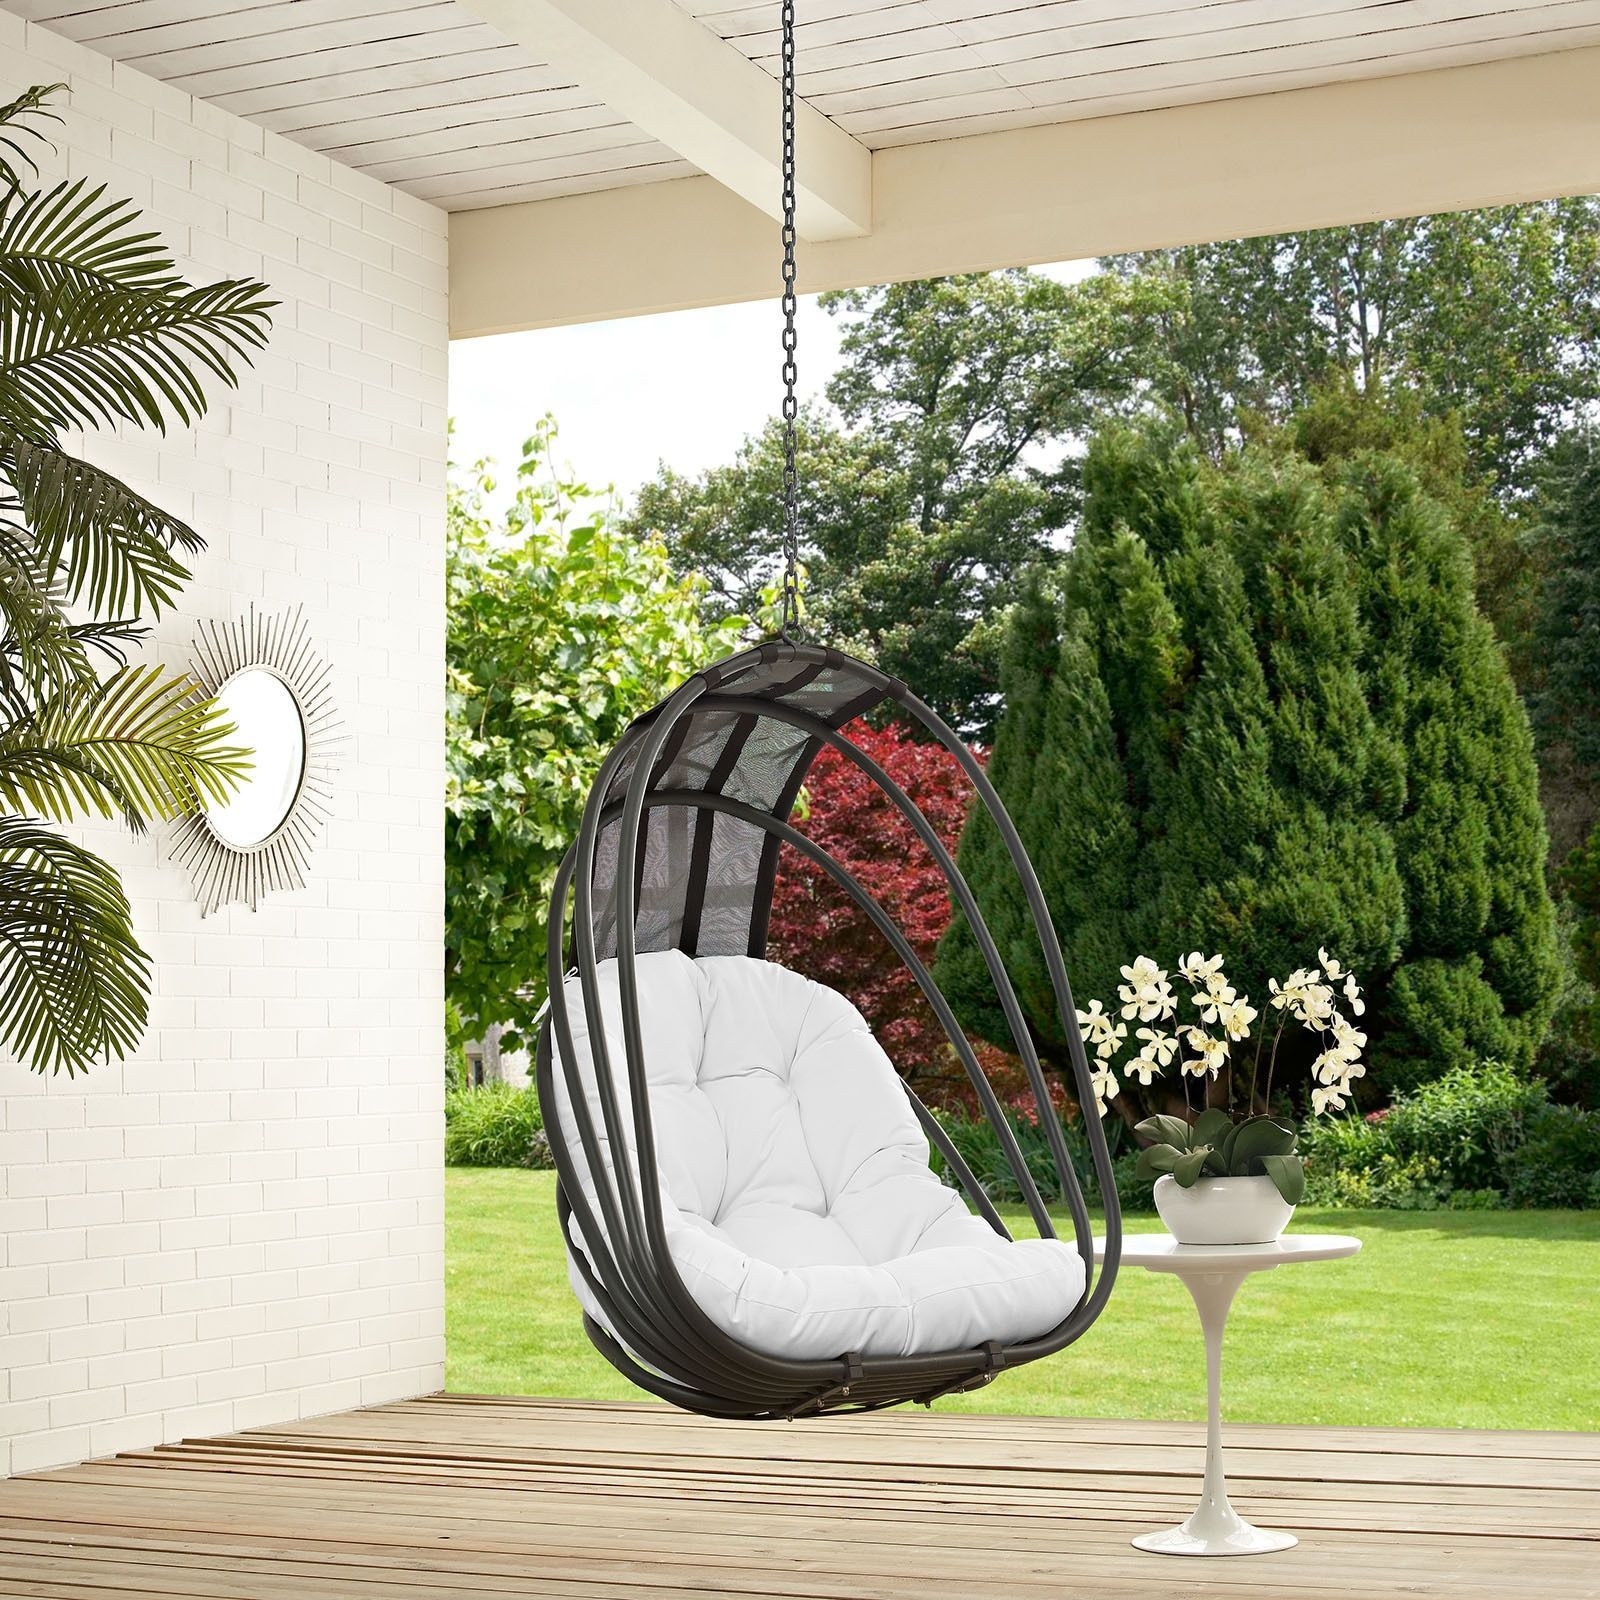 Modway whisk steel and polyethylene rattan outdoor patio swing chair